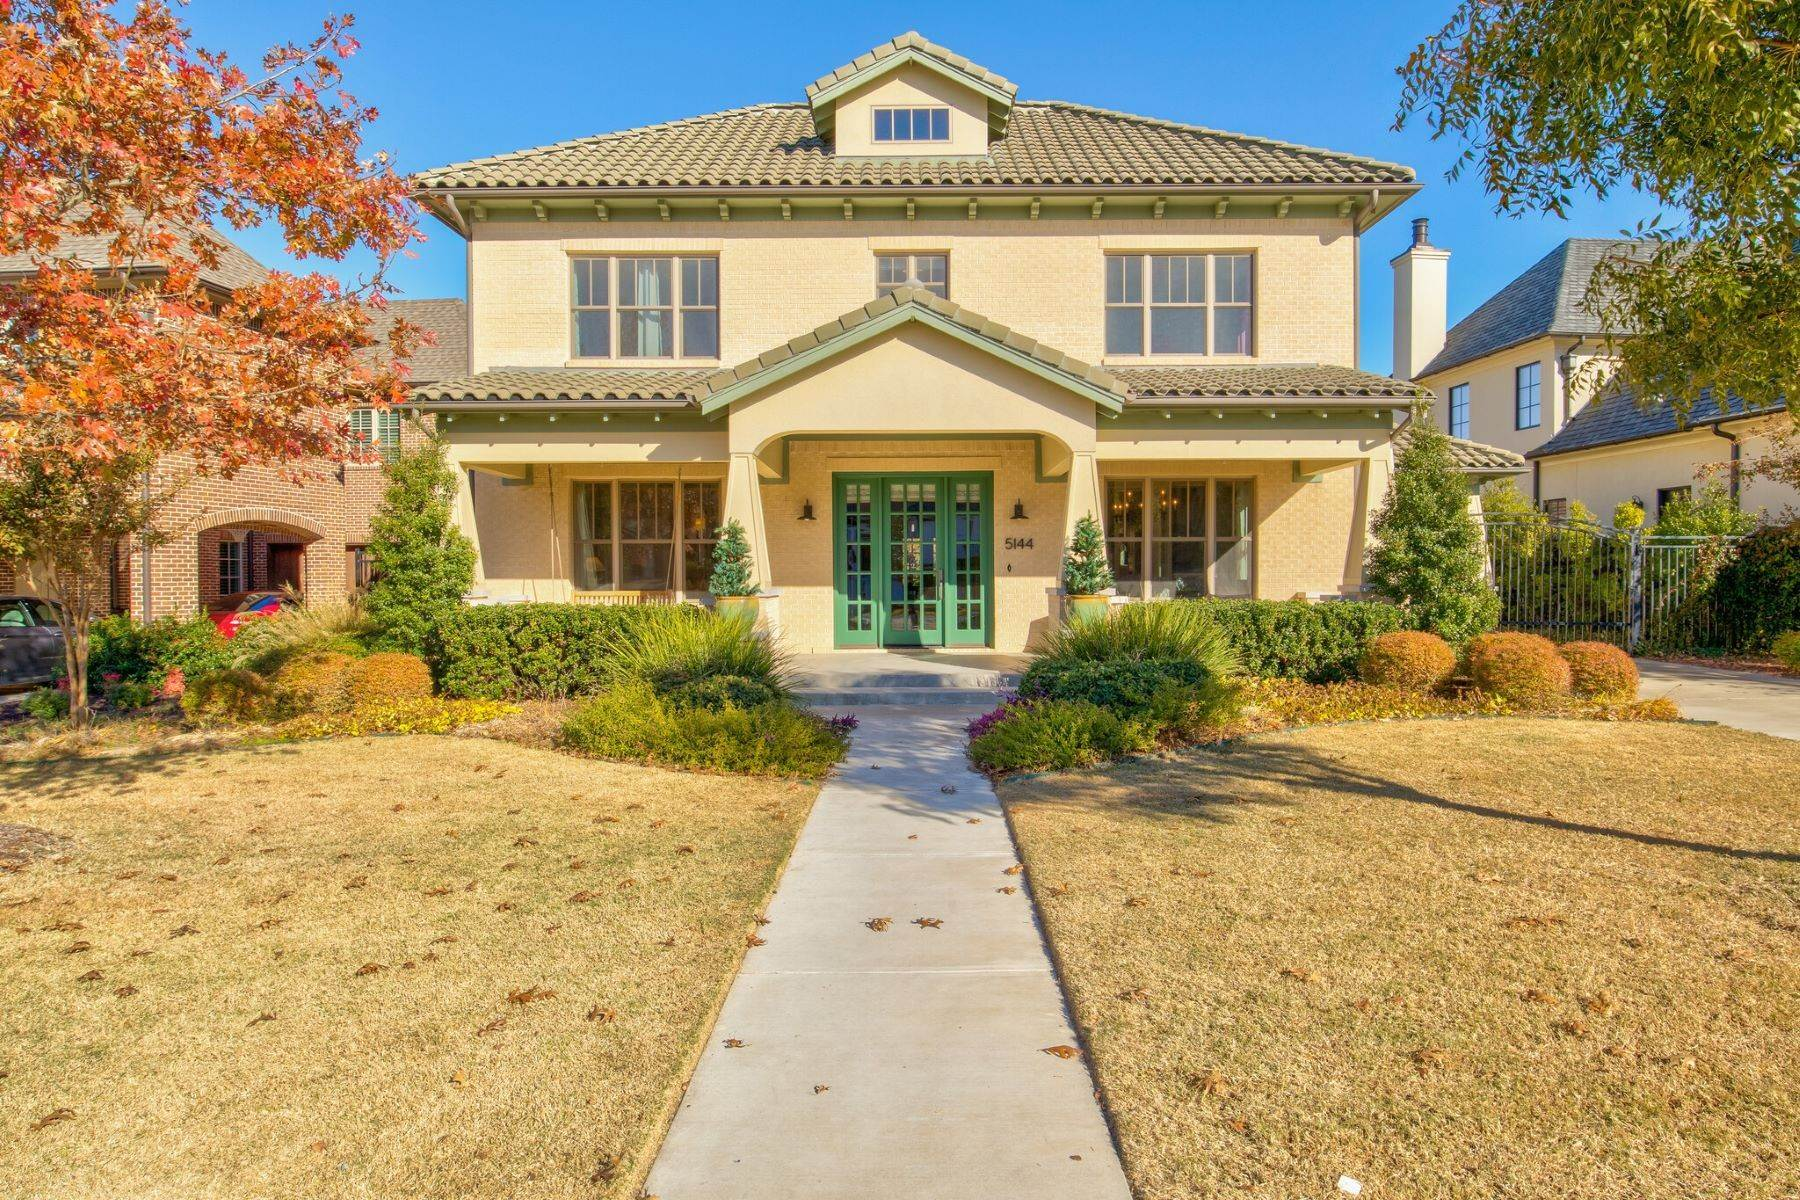 Single Family Homes for Sale at Great Home In River Hills 5144 Peach Willow Lane Fort Worth, Texas 76109 United States